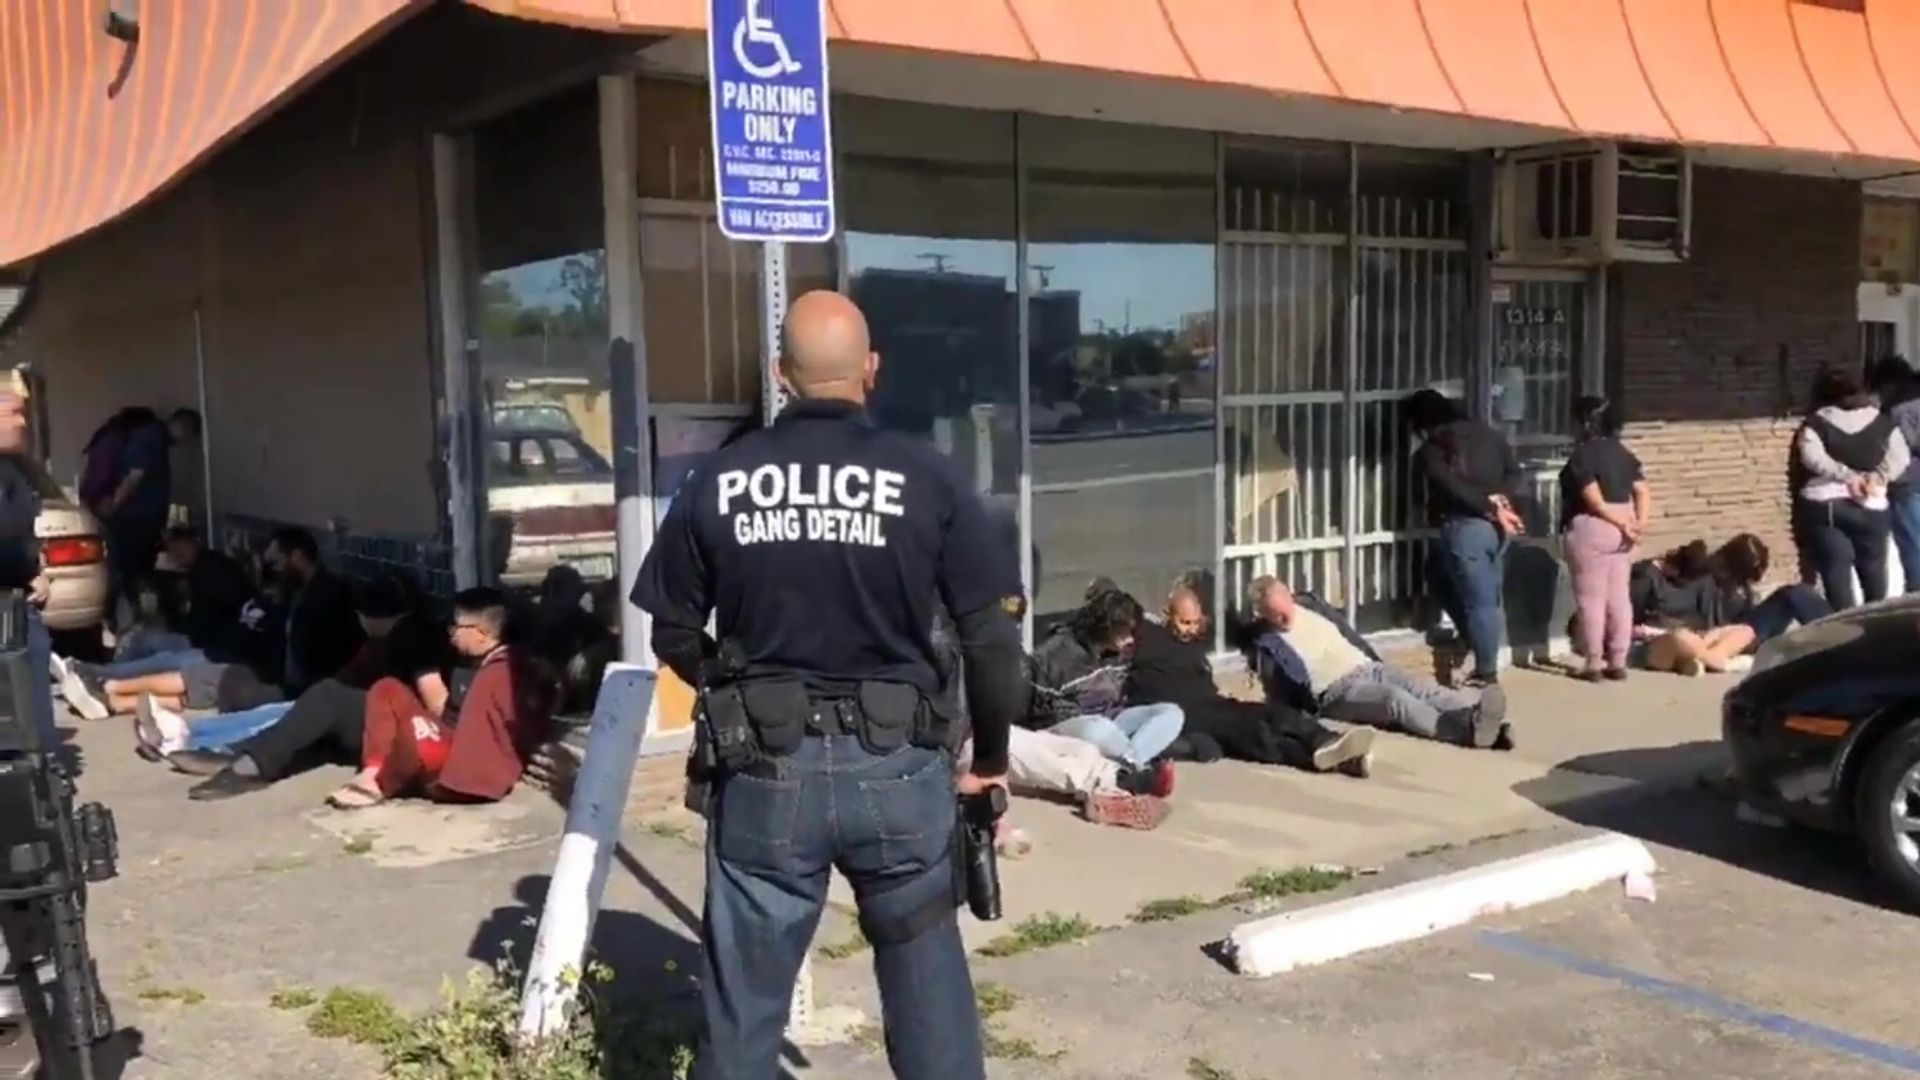 Report of gun at L.A. strip mall detained by COPS